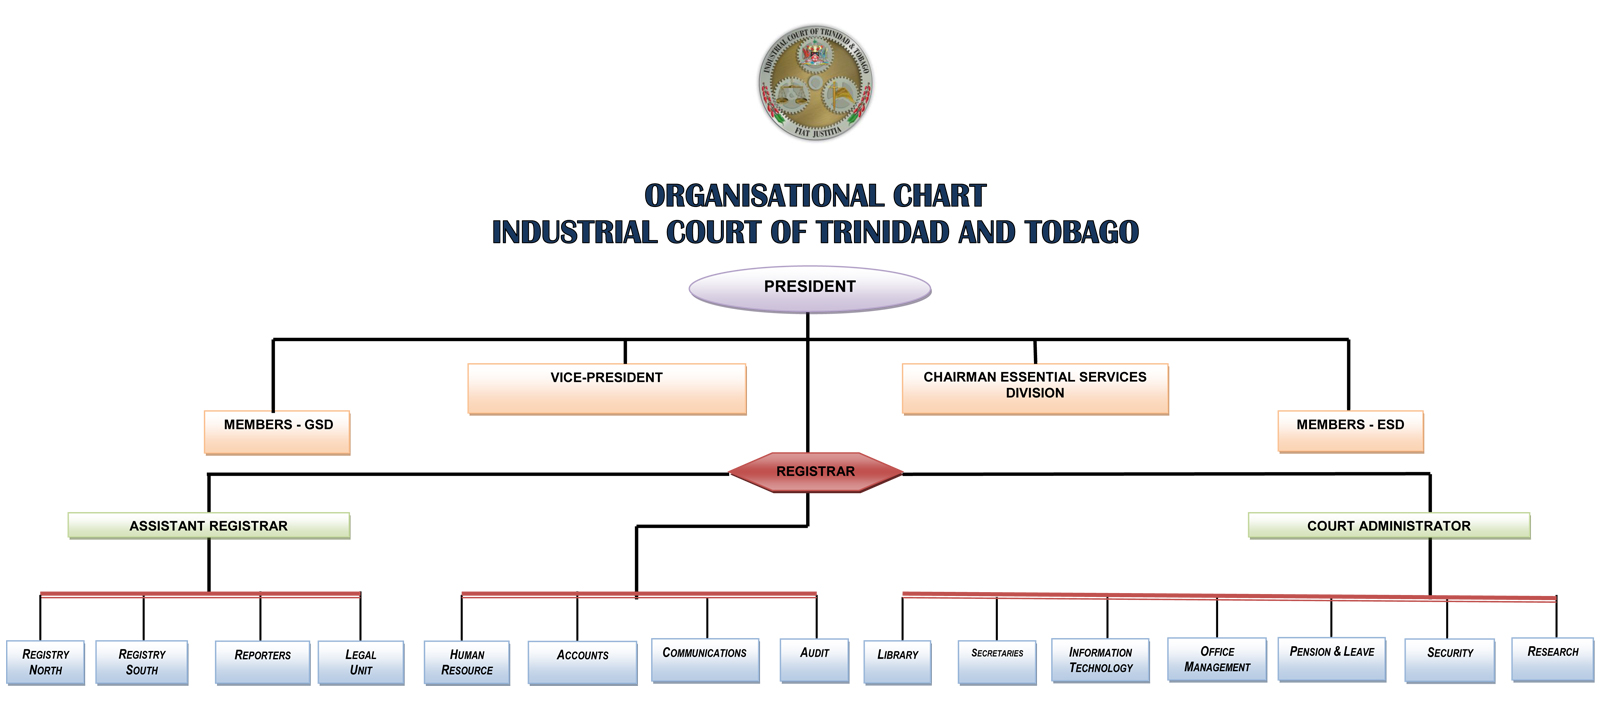 ORGANISATIONAL CHART INDUSTRIAL COURT 2016